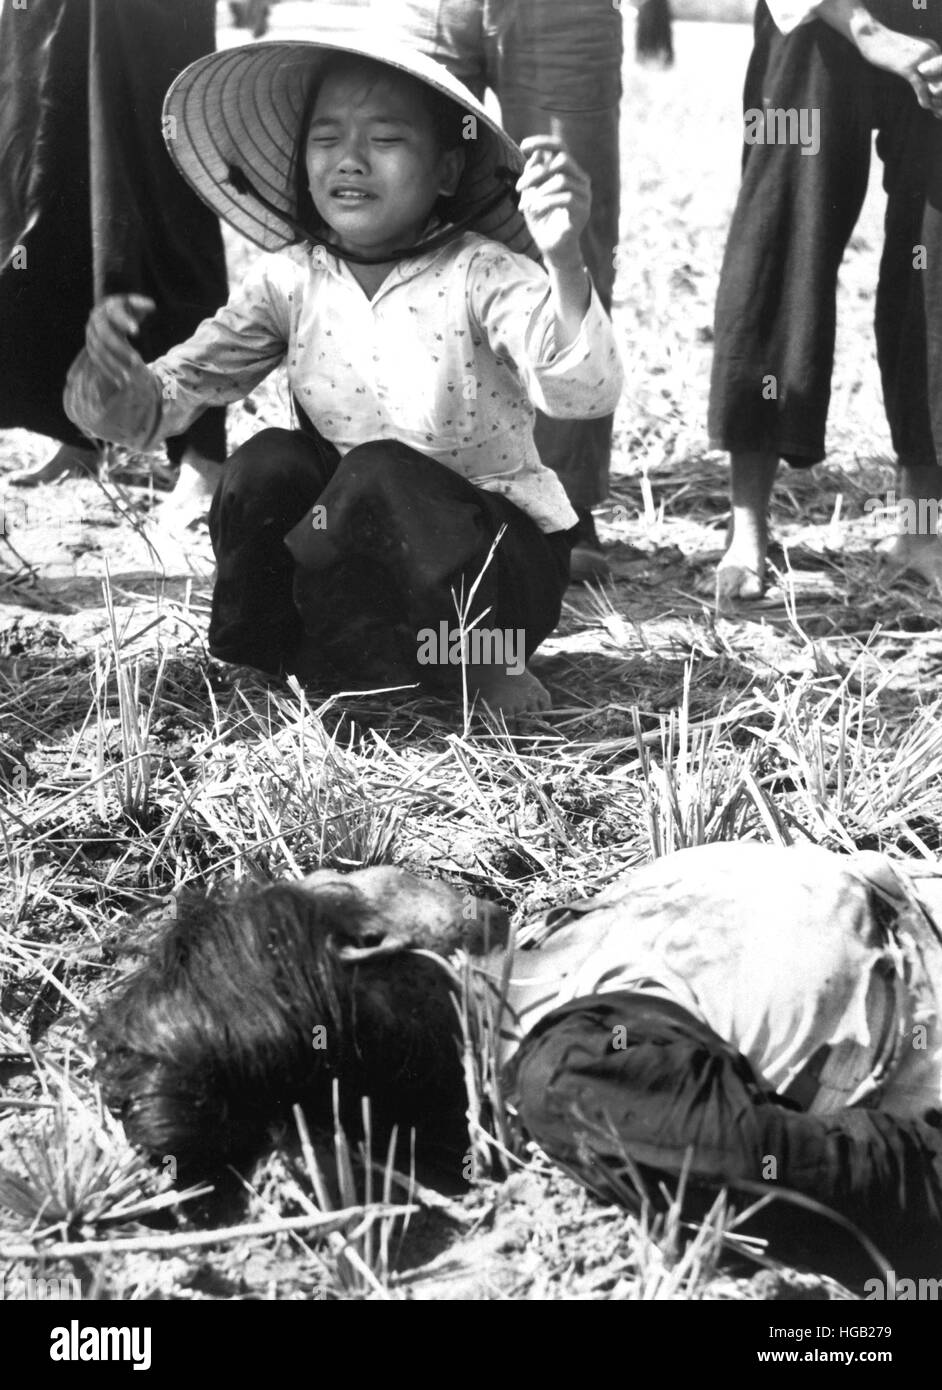 A civilian grieves over friend killed by a Viet Cong mine in Vietnam, 1966. - Stock Image